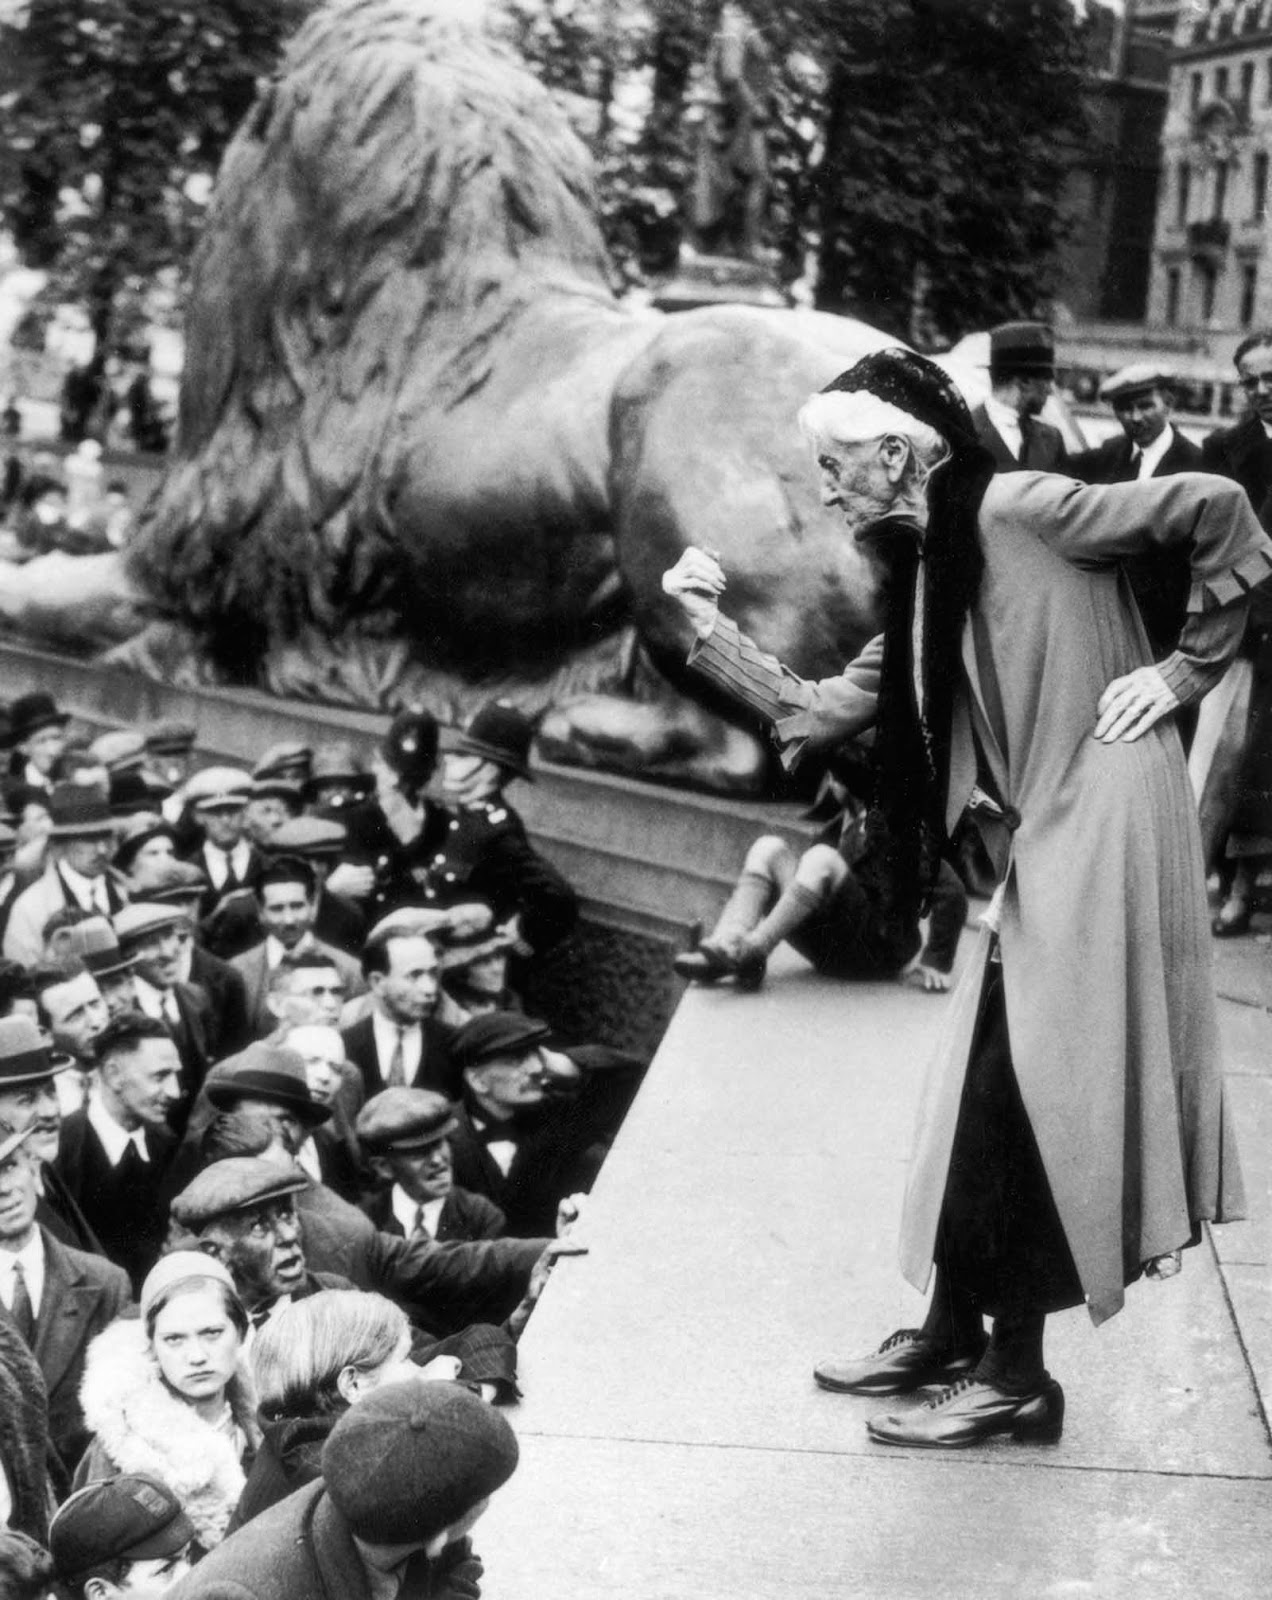 British suffragette Charlotte Despard (1844-1939) addresses the crowd in Trafalgar Square during a Communist rally. 1933.